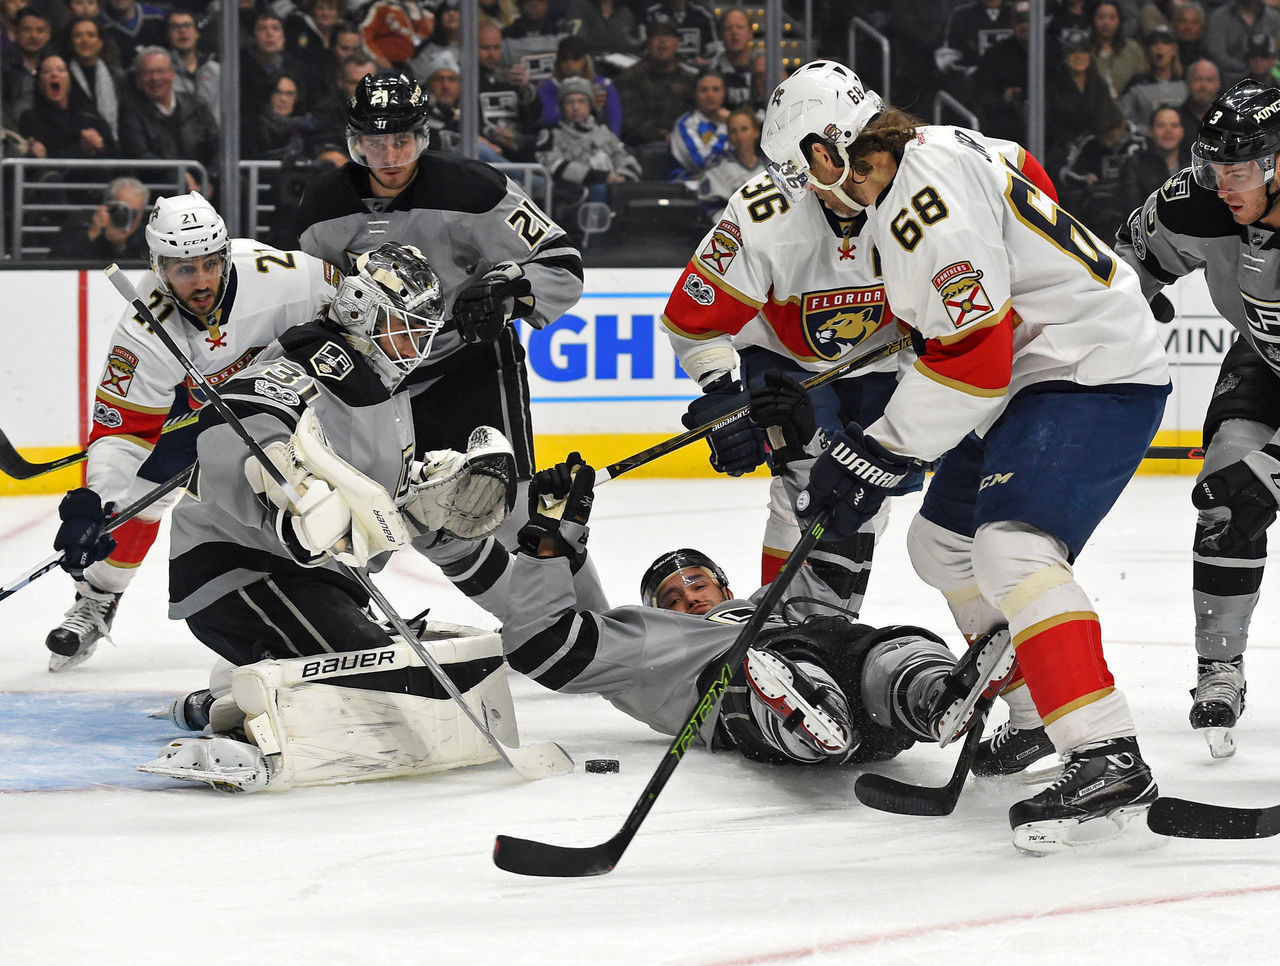 Cropped 2017 02 19t040646z 779773445 nocid rtrmadp 3 nhl florida panthers at los angeles kings